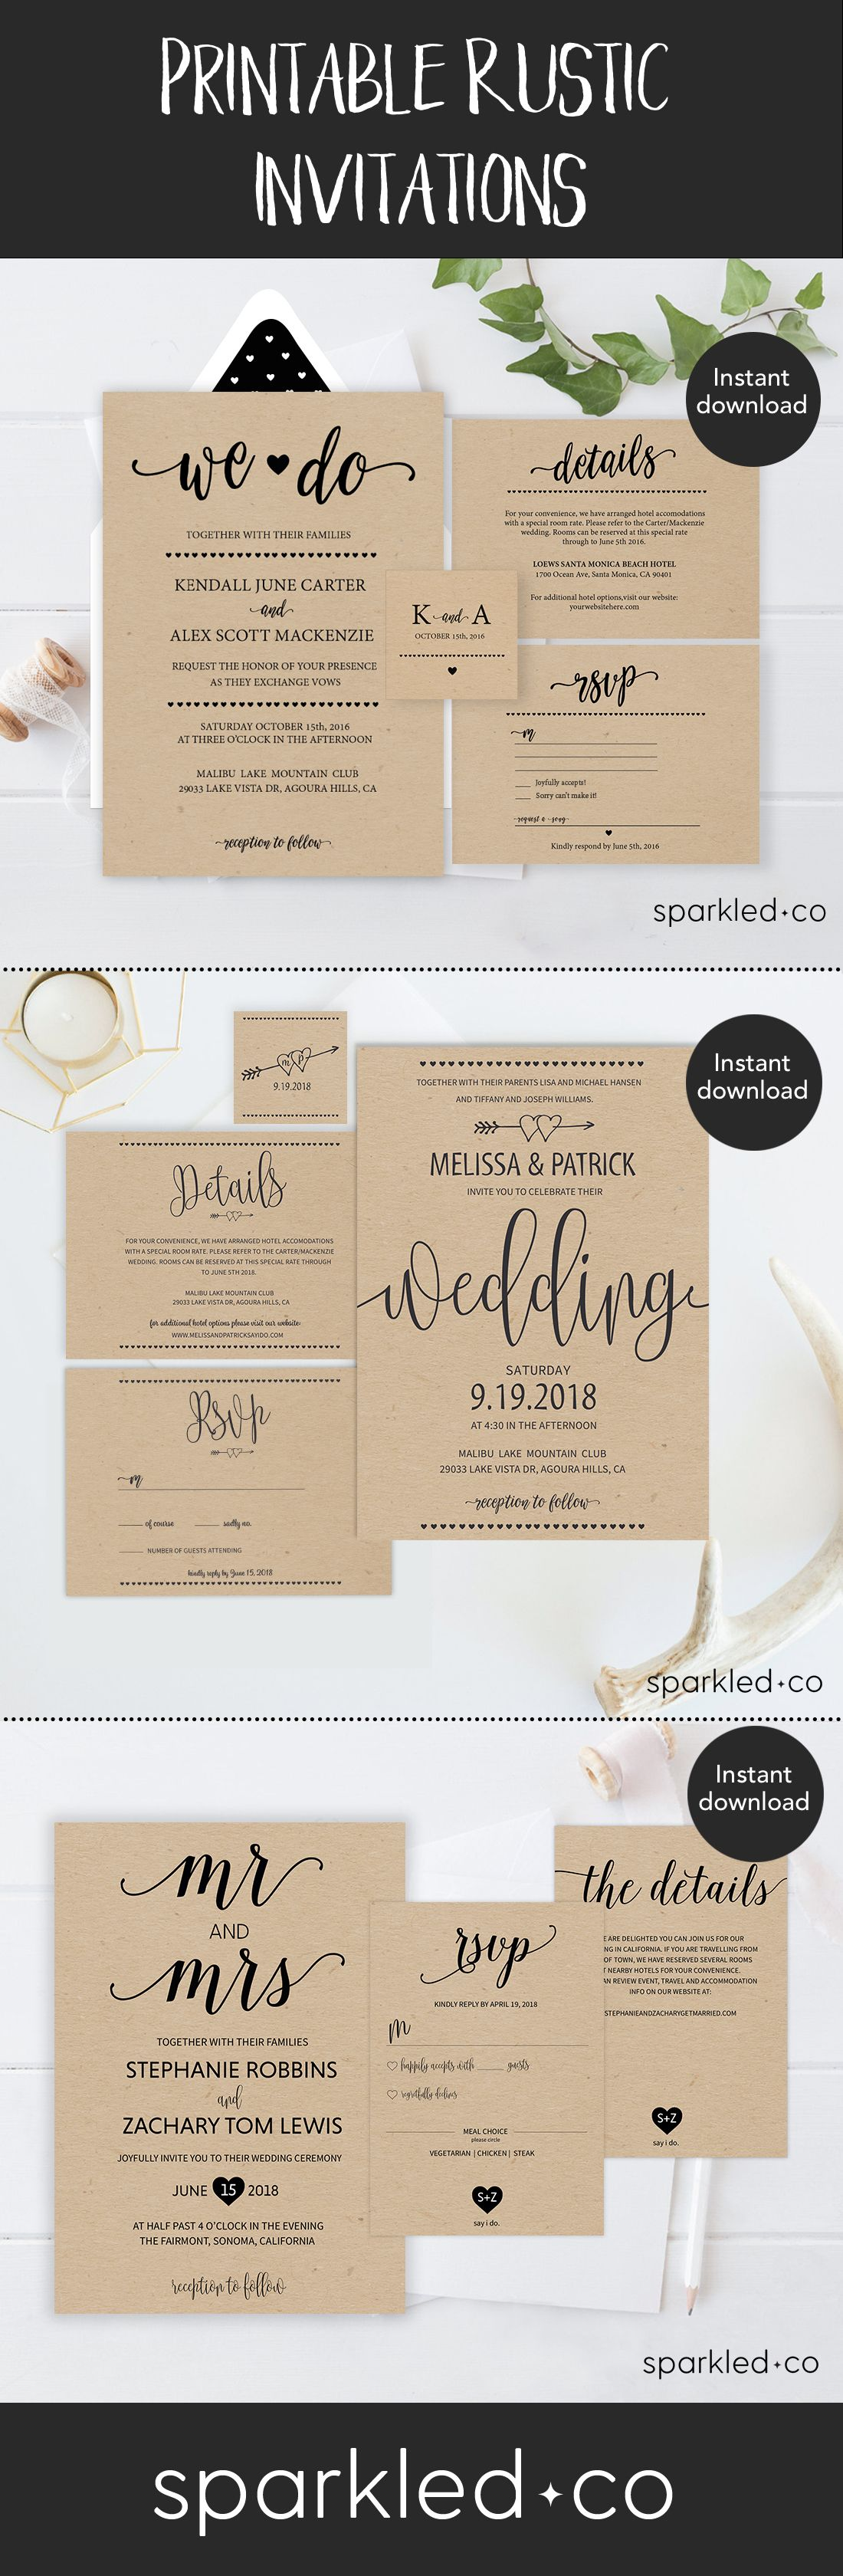 time wedding invitatiowording%0A    Popular Wedding Invitation Wording  u     DIY Templates Ideas   Verses   Template and Weddings